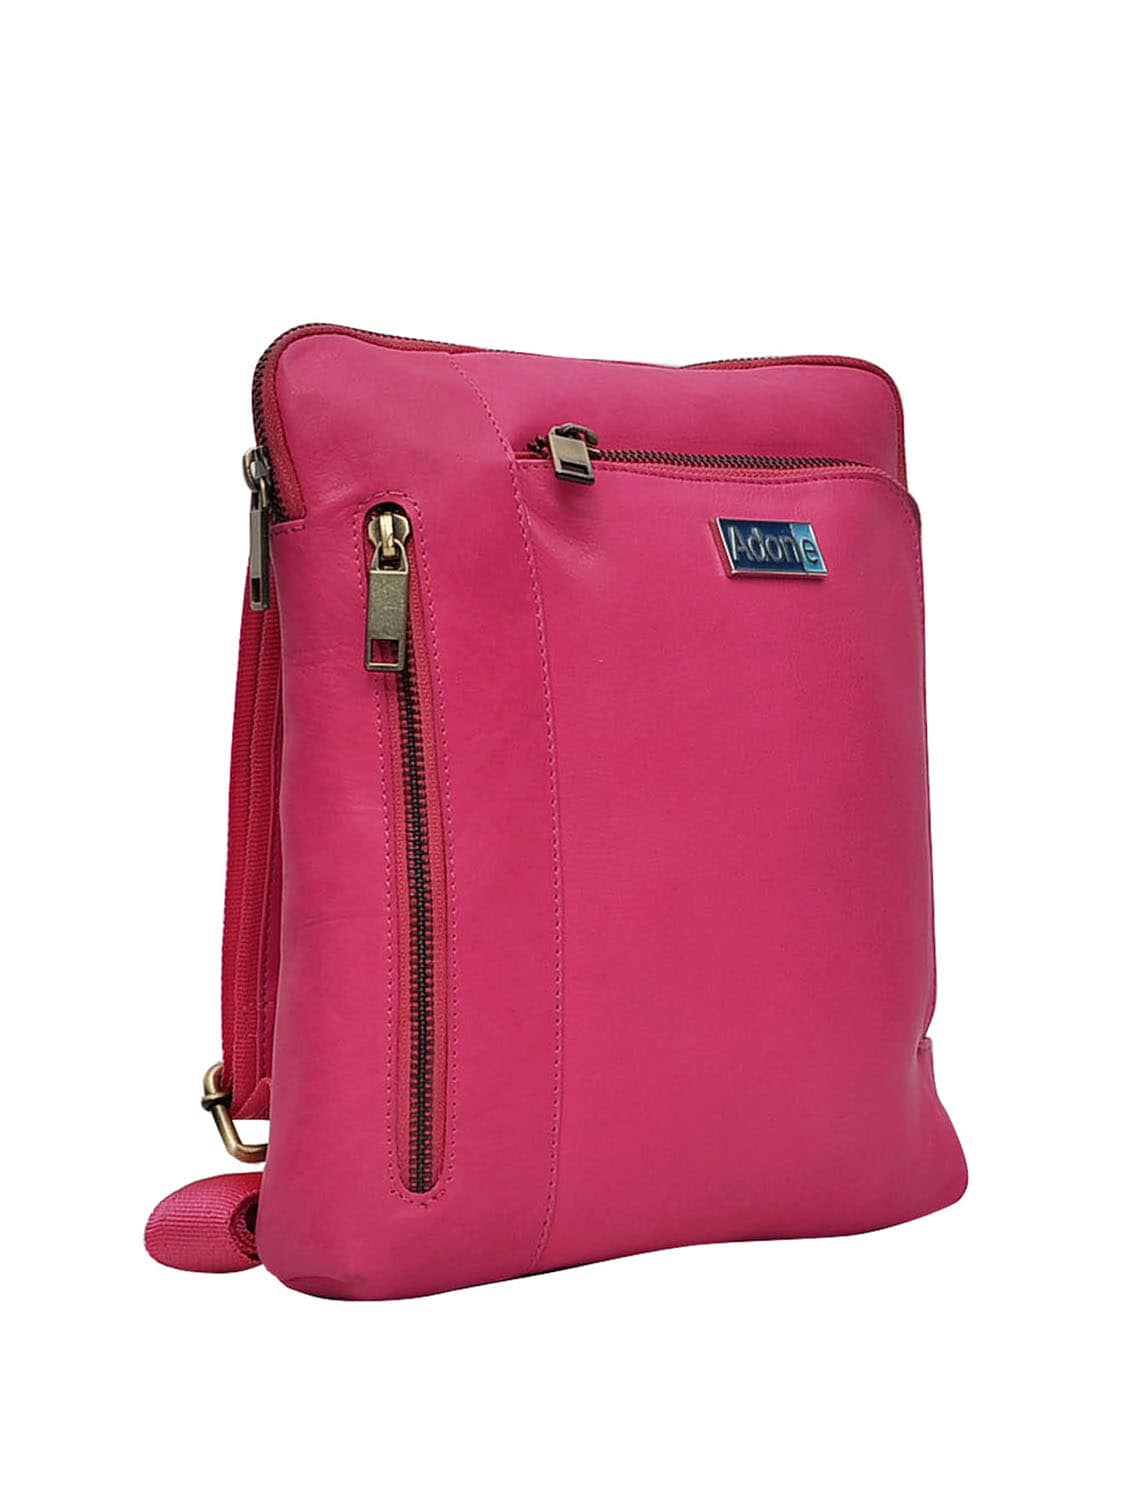 ce188cb9f953 Buy Pink Leather Sling Bag by Adone - Online shopping for Sling Bags in  India